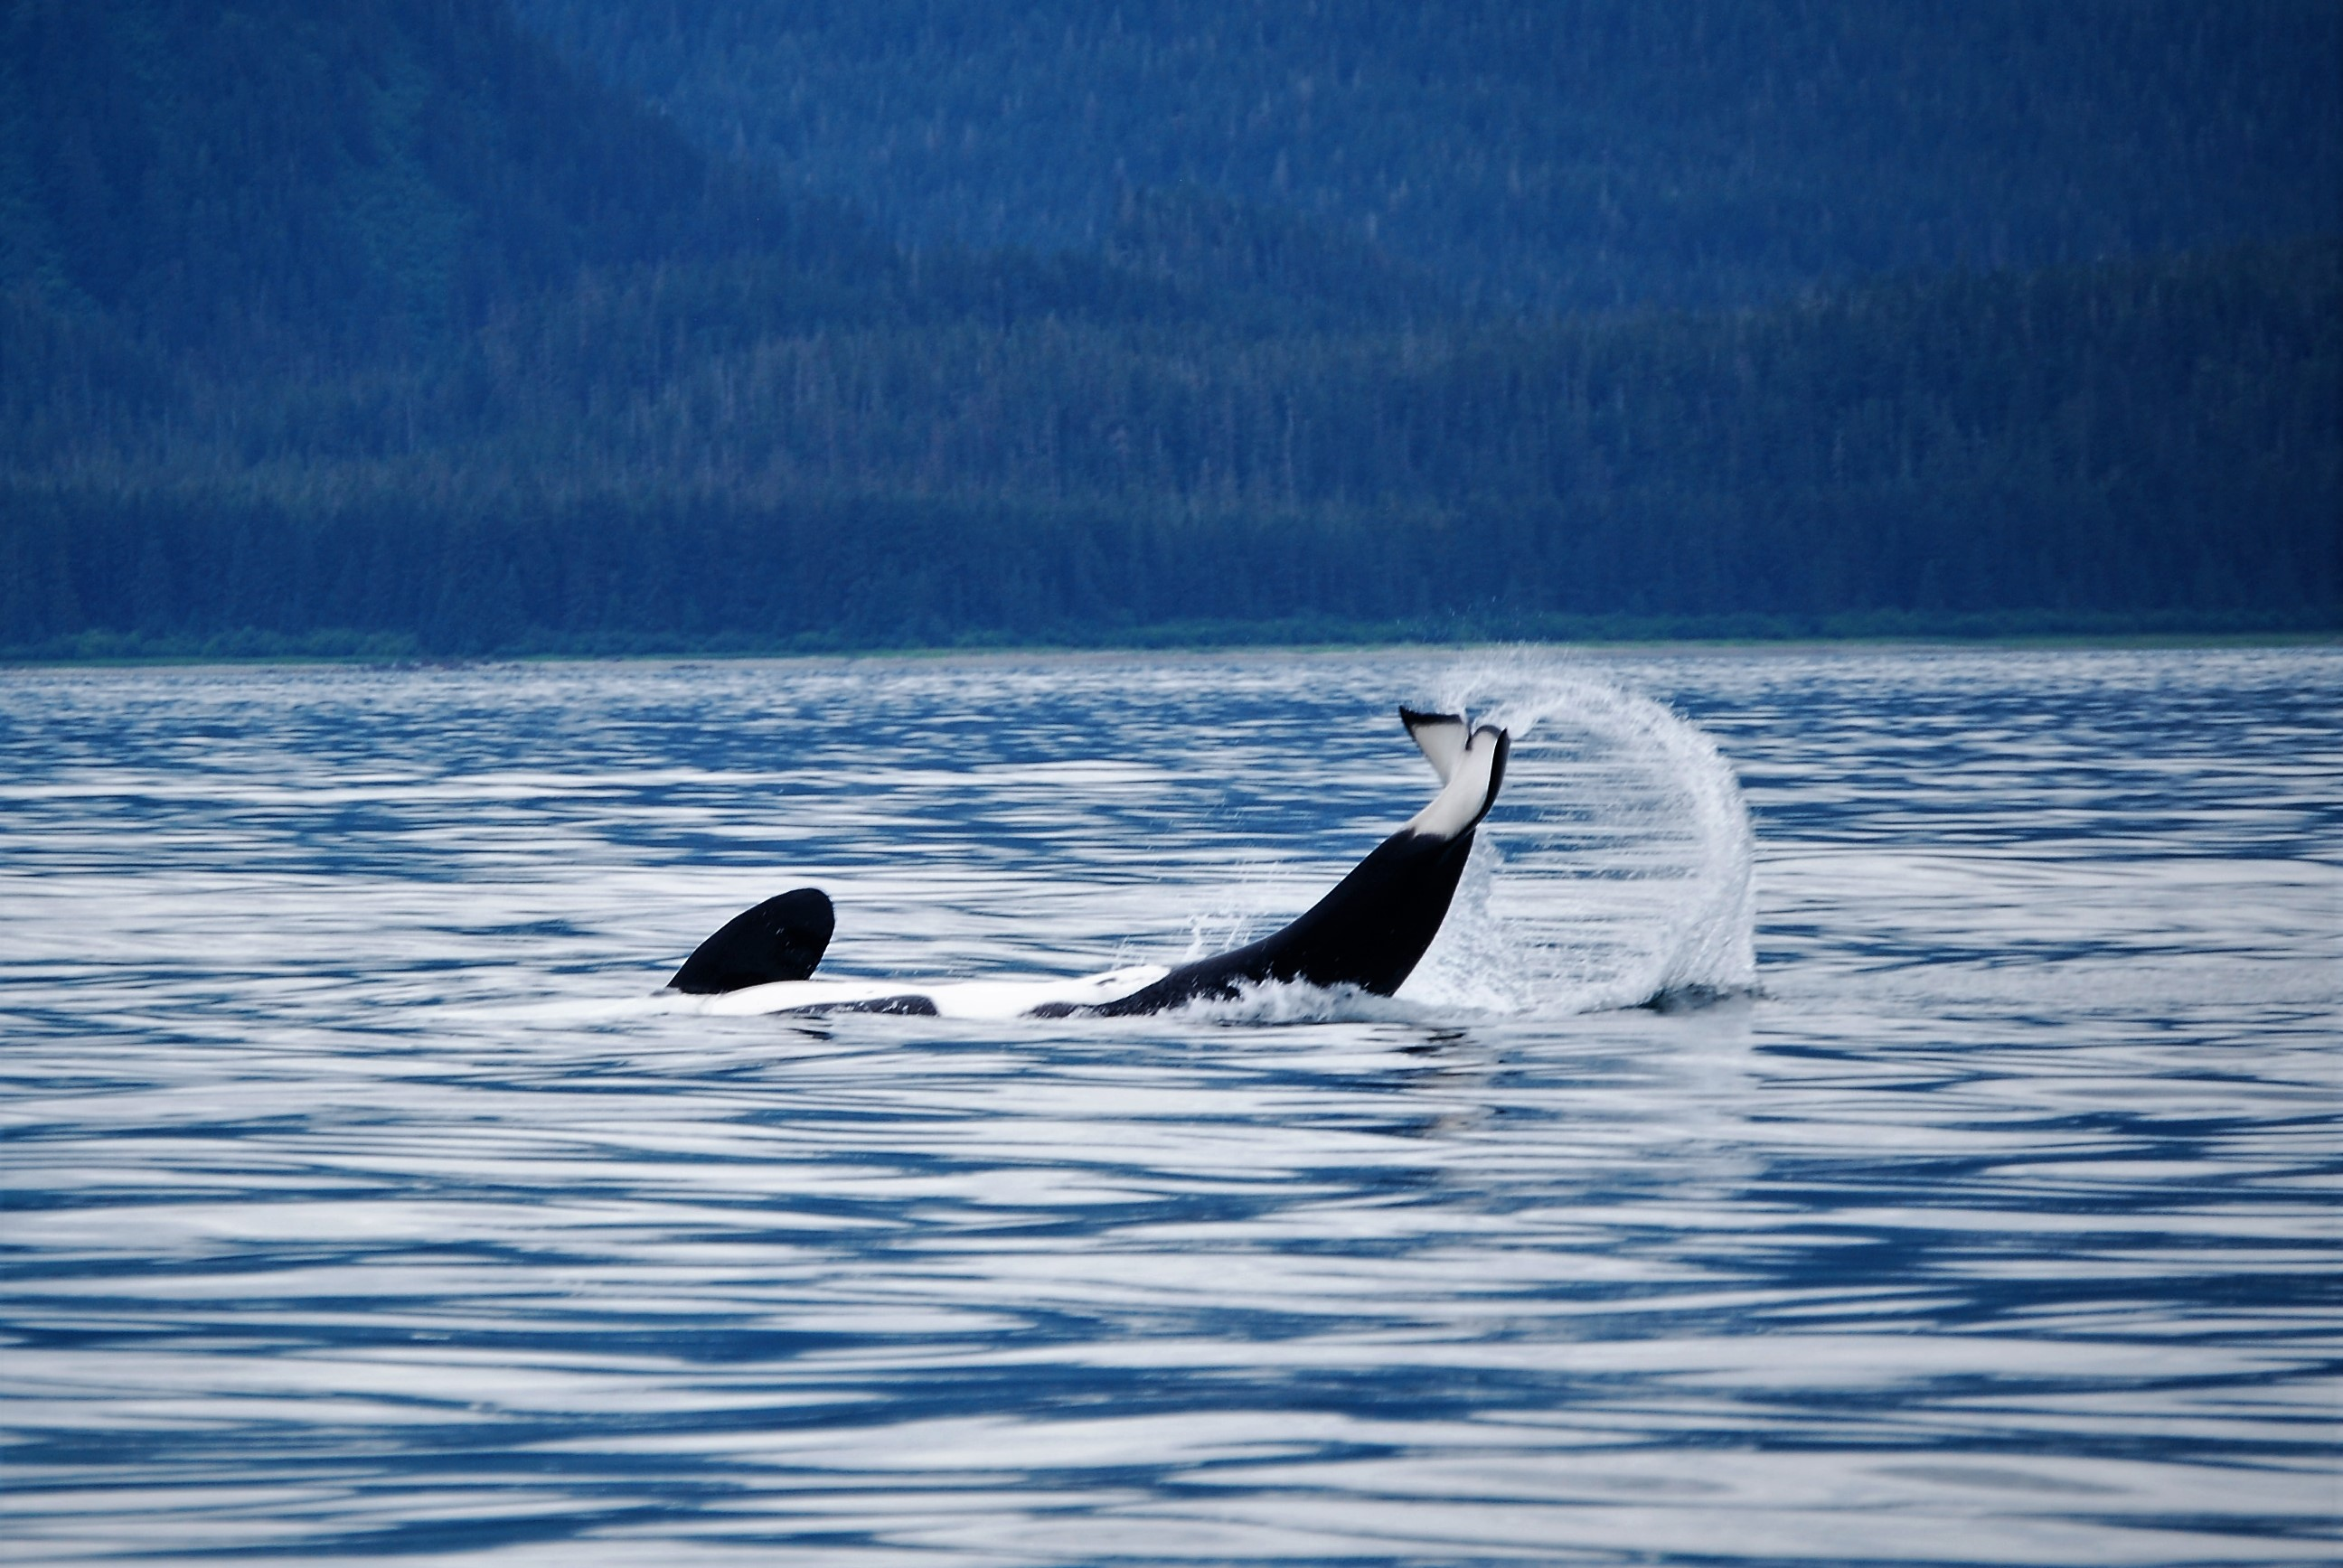 Killer Whale playing